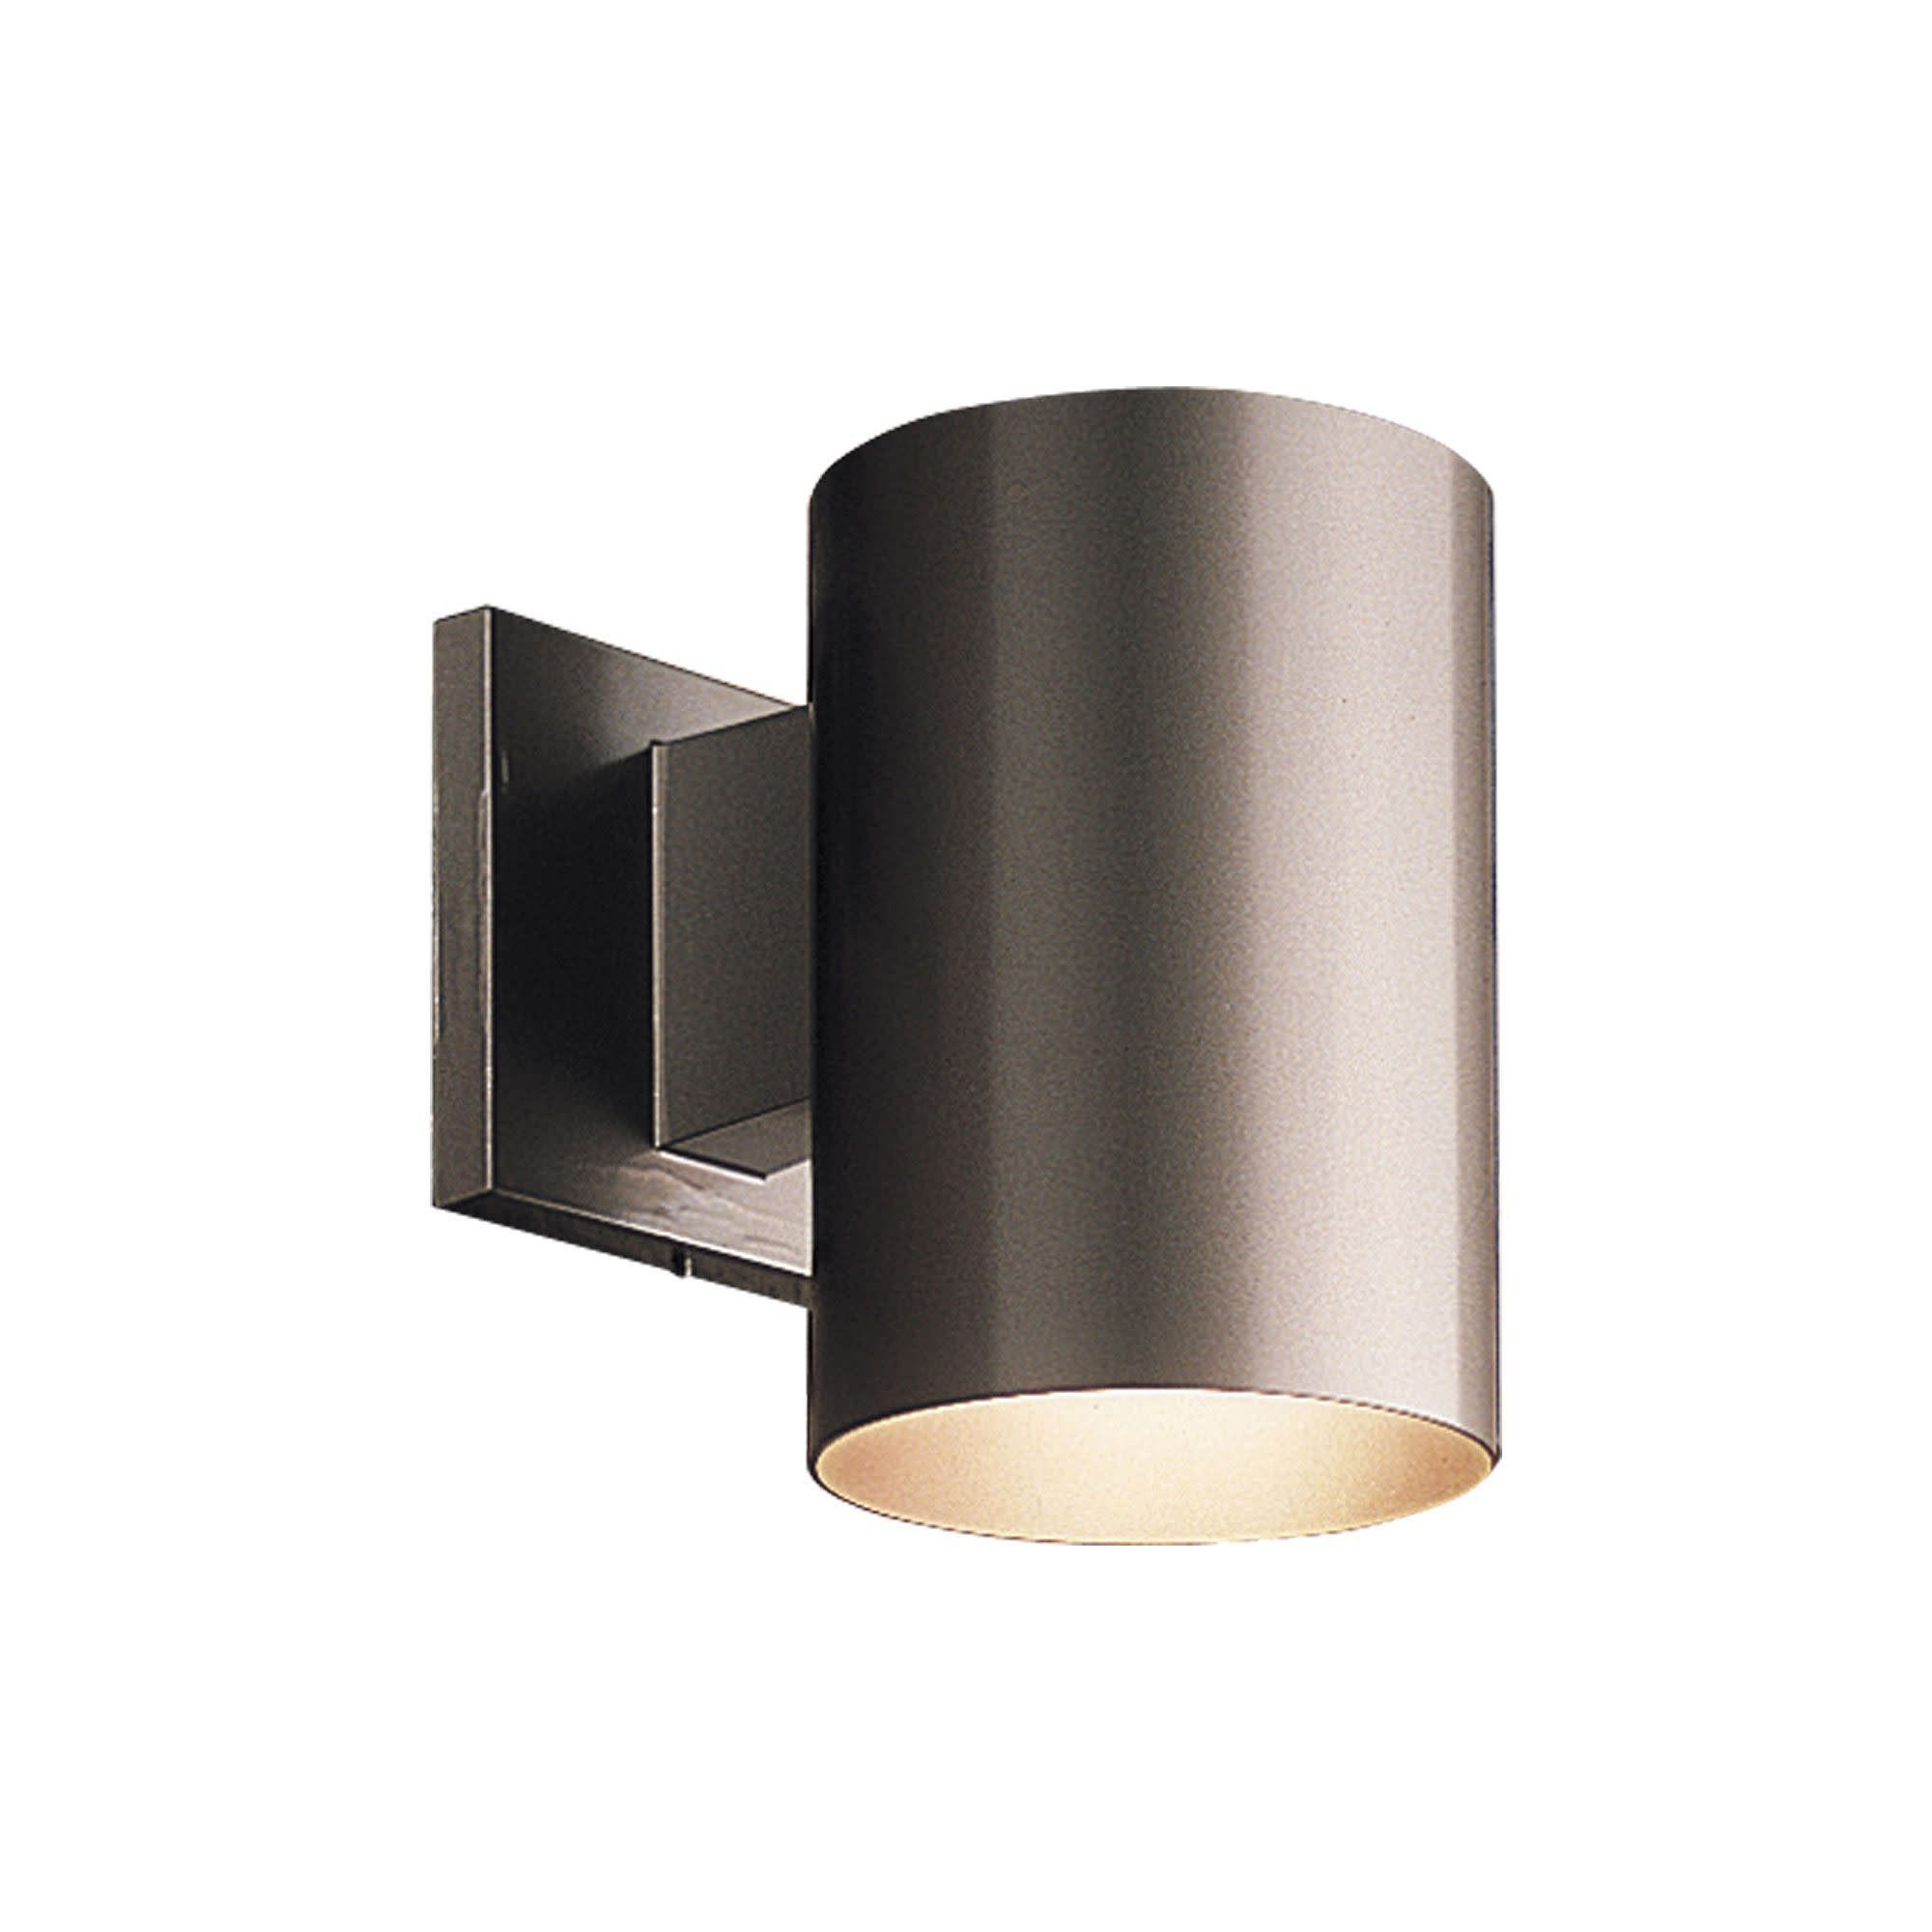 Progress Lighting P5674 Cylinder 1 Light Outdoor Wall Sconce With Metal Cylinder Shade Antique B With Images Outdoor Wall Sconce Progress Lighting Wall Sconces